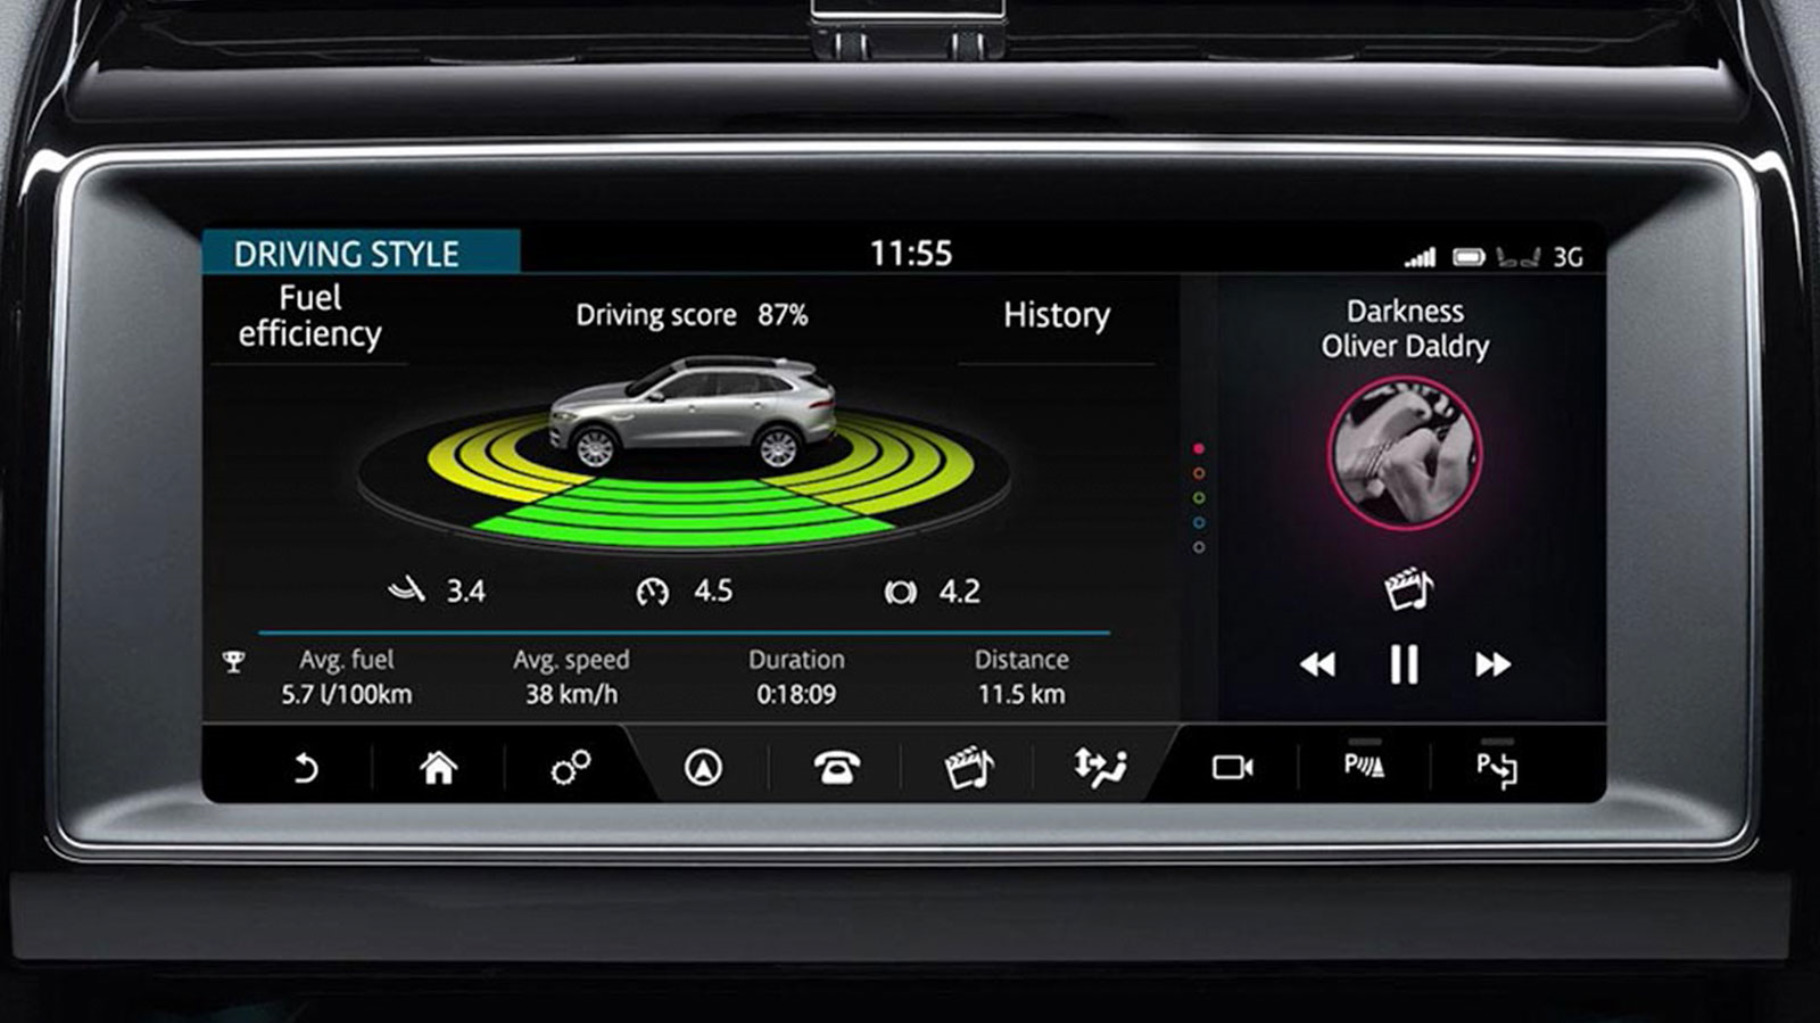 Jaguar F-PACE's InControl Touch Pro: Eco Data information video.